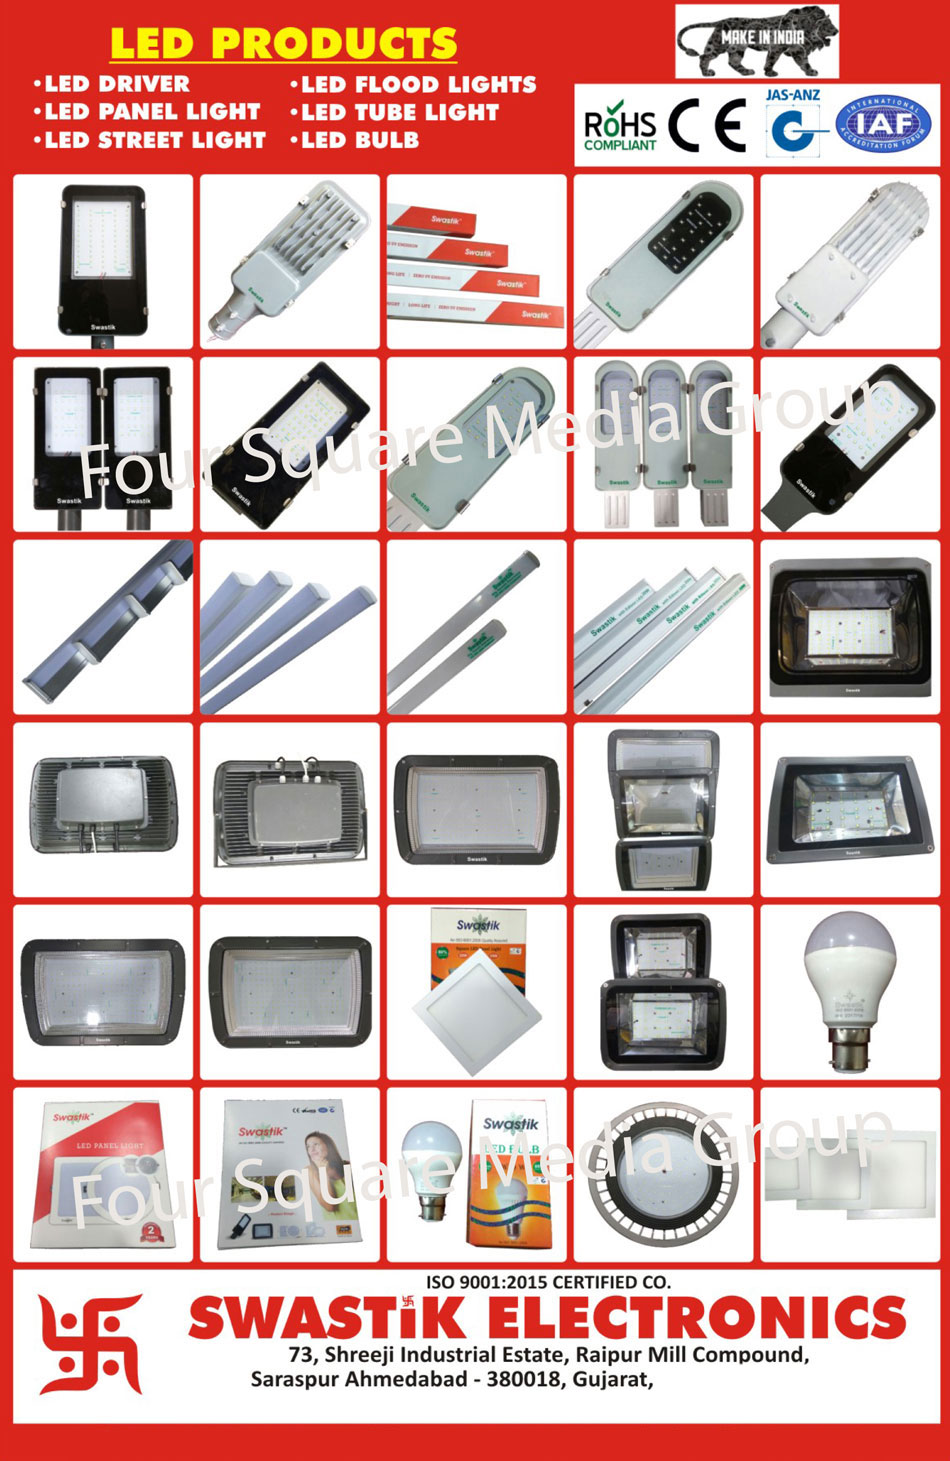 Led Lights, Led Panel Lights, Led Street Lights, Led Tube Lights, Bulbs, Led Drivers, Led Flood Lights